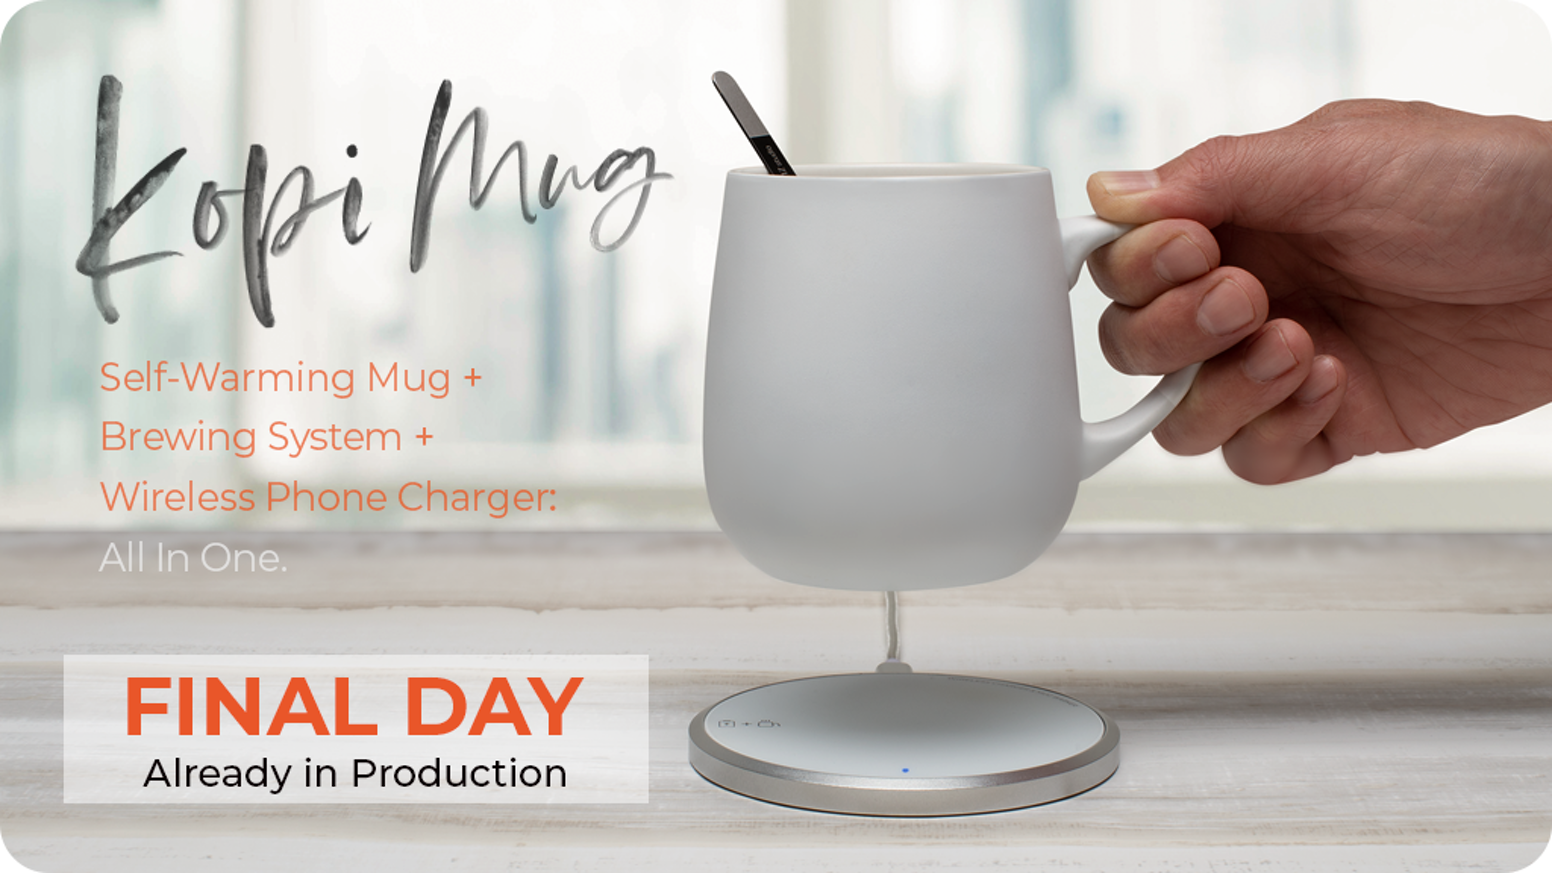 Featuring a charging base that warms your mug and wirelessly charges your cell phone, as well as a complete brewing system